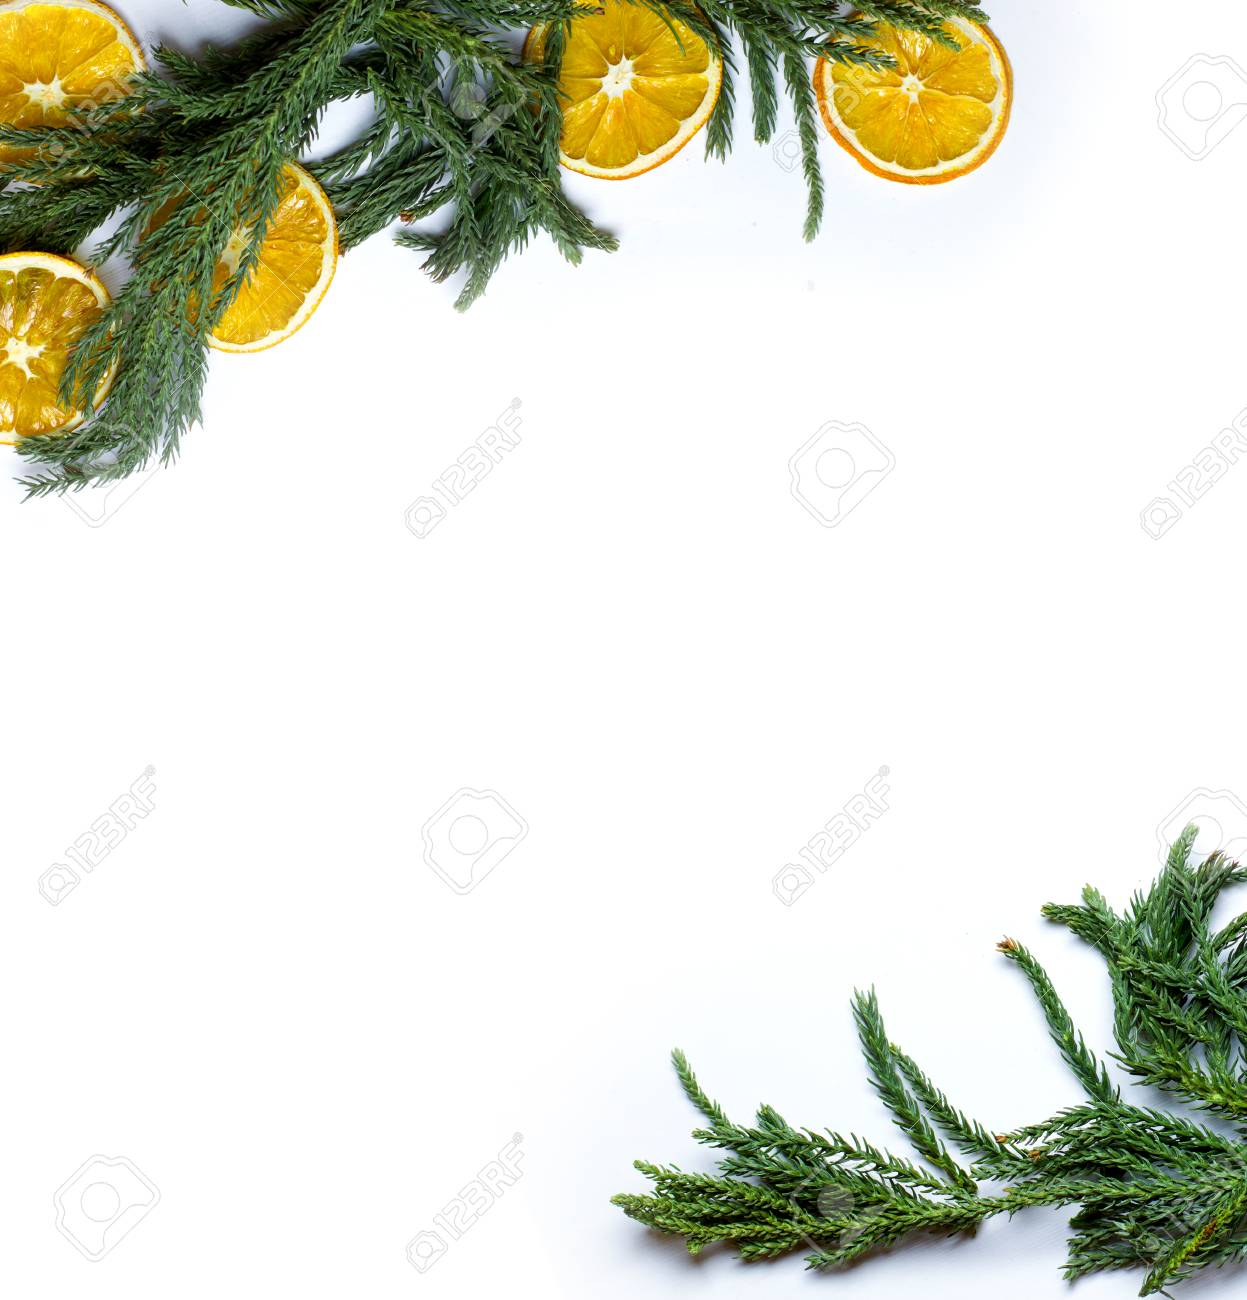 christmas diagonal top and bottom corners border frame of fir tree branch dry oranges fruit